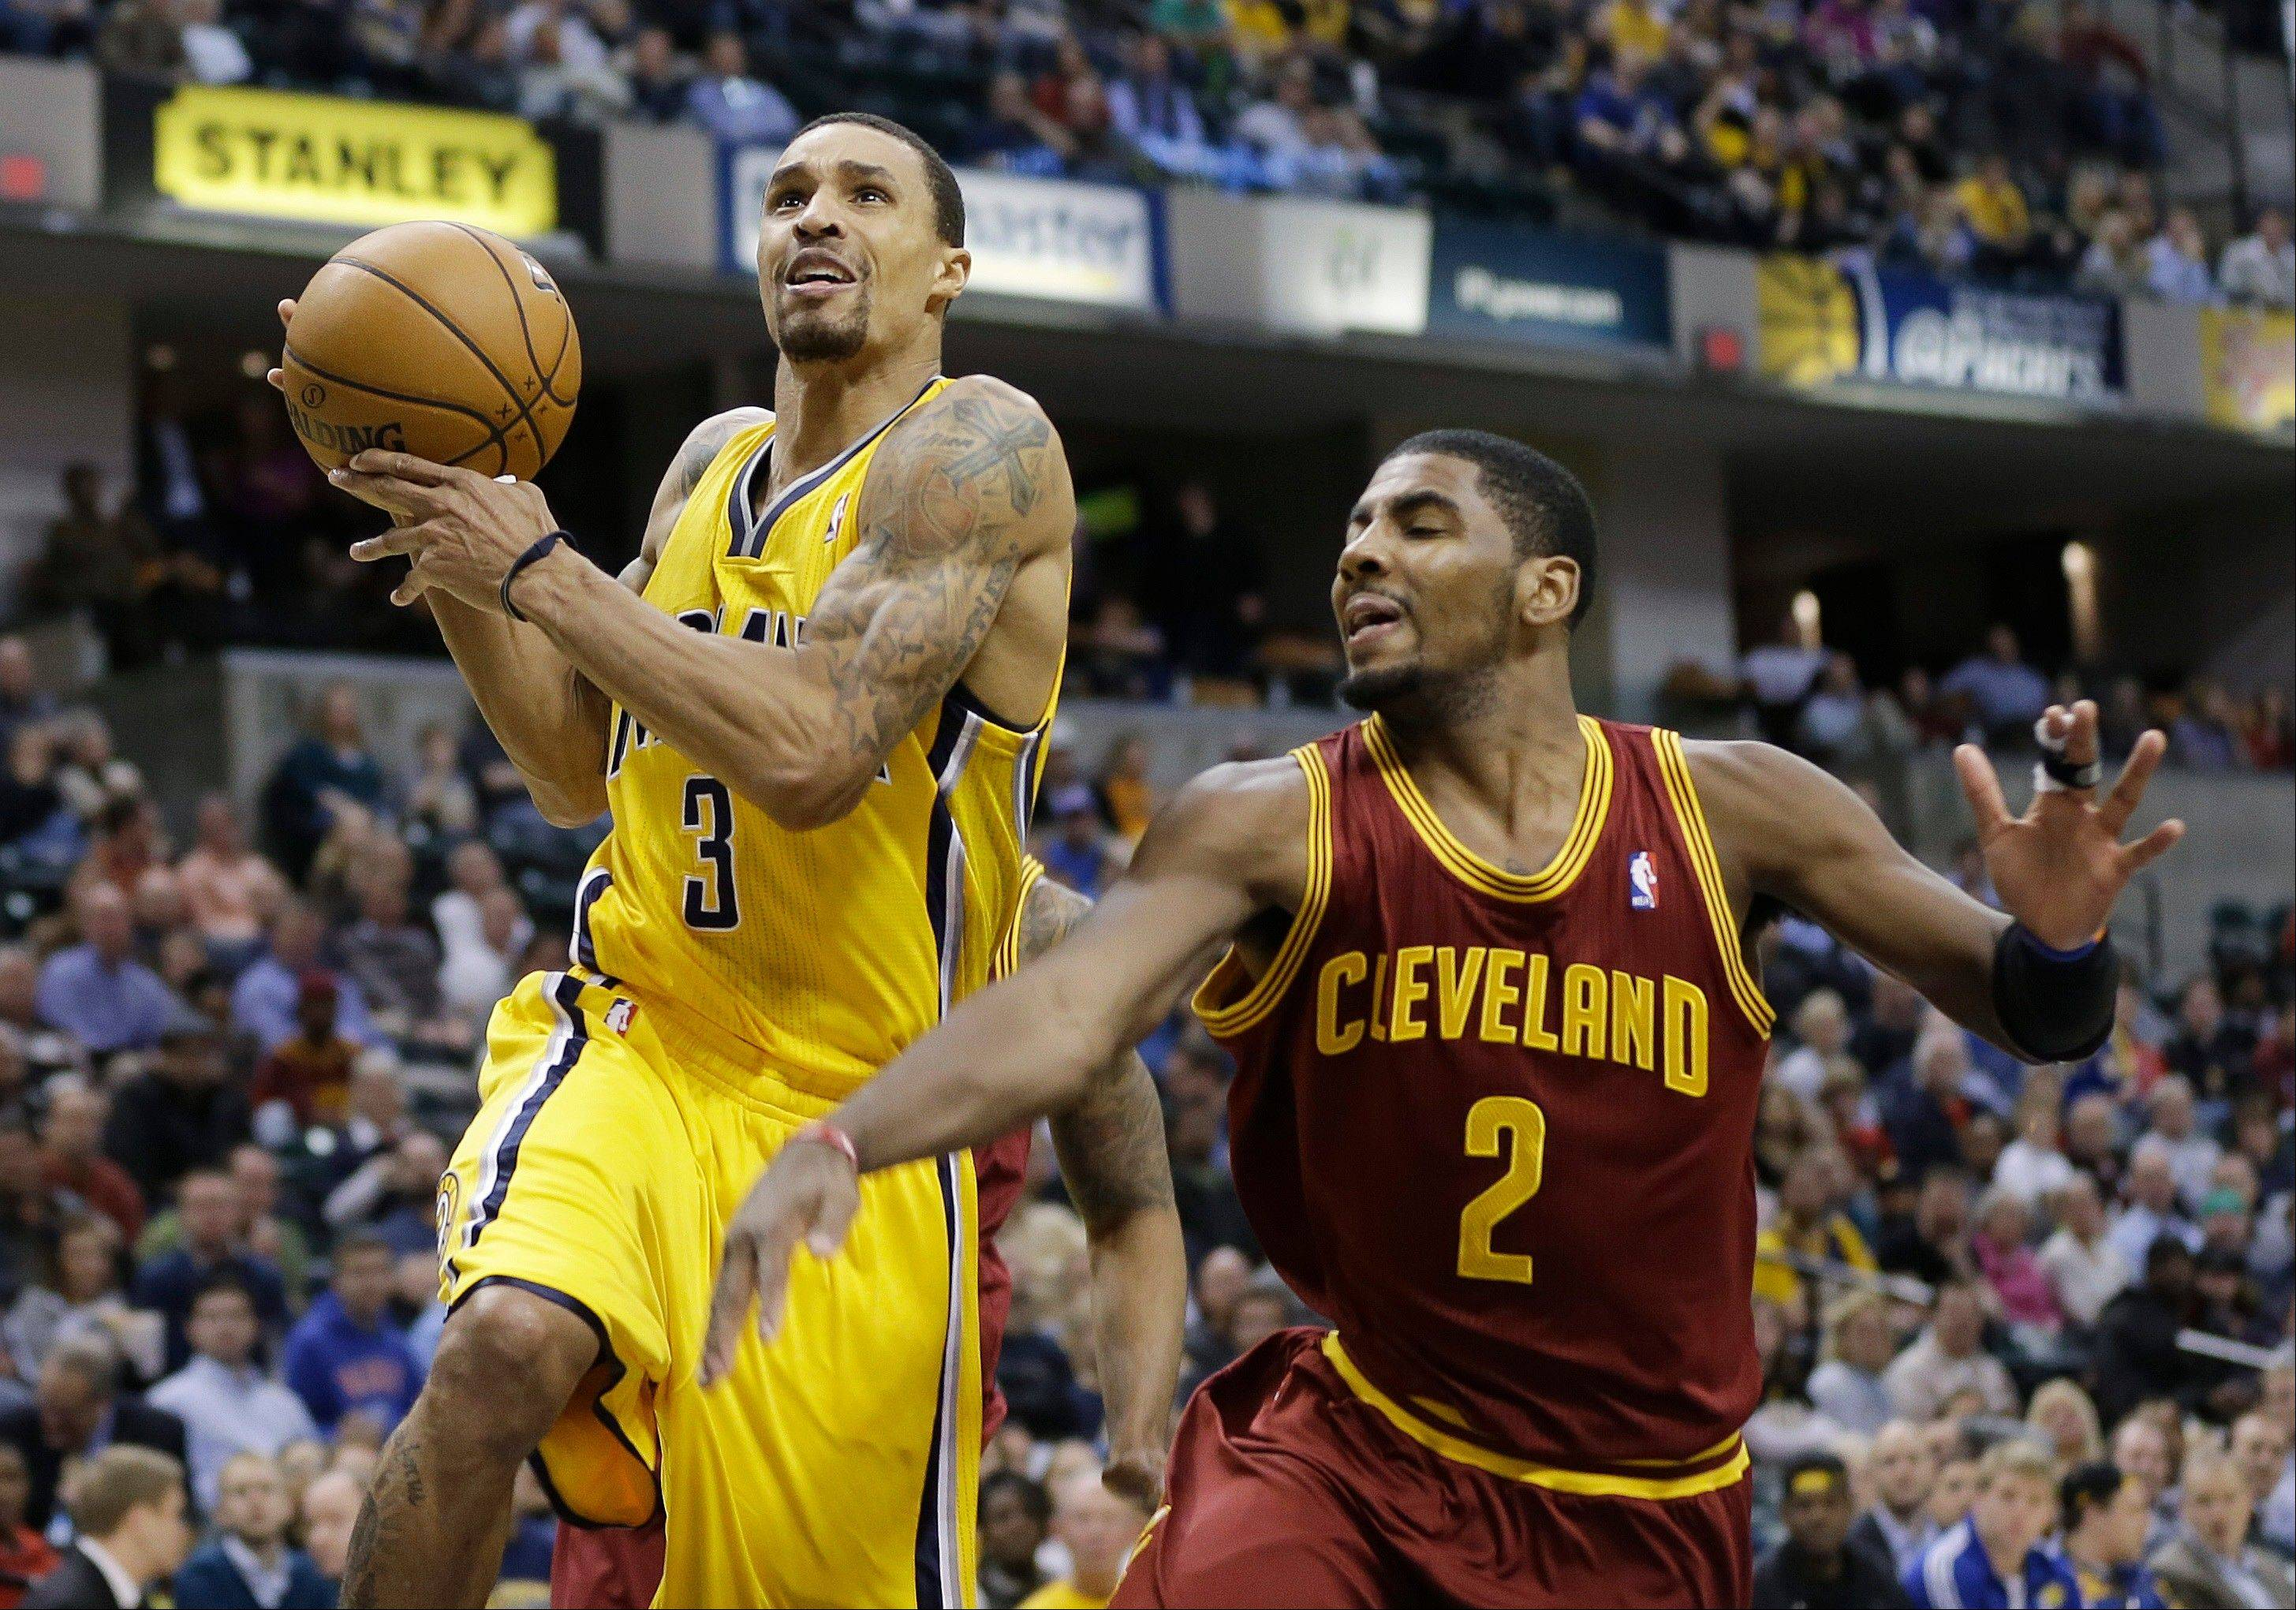 The Indiana Pacers' George Hill is fouled by Cleveland Cavaliers guard Kyrie Irving as he goes up for a shot Wednesday during the second half in Indianapolis. The Pacers defeated the Cavaliers 96-81.